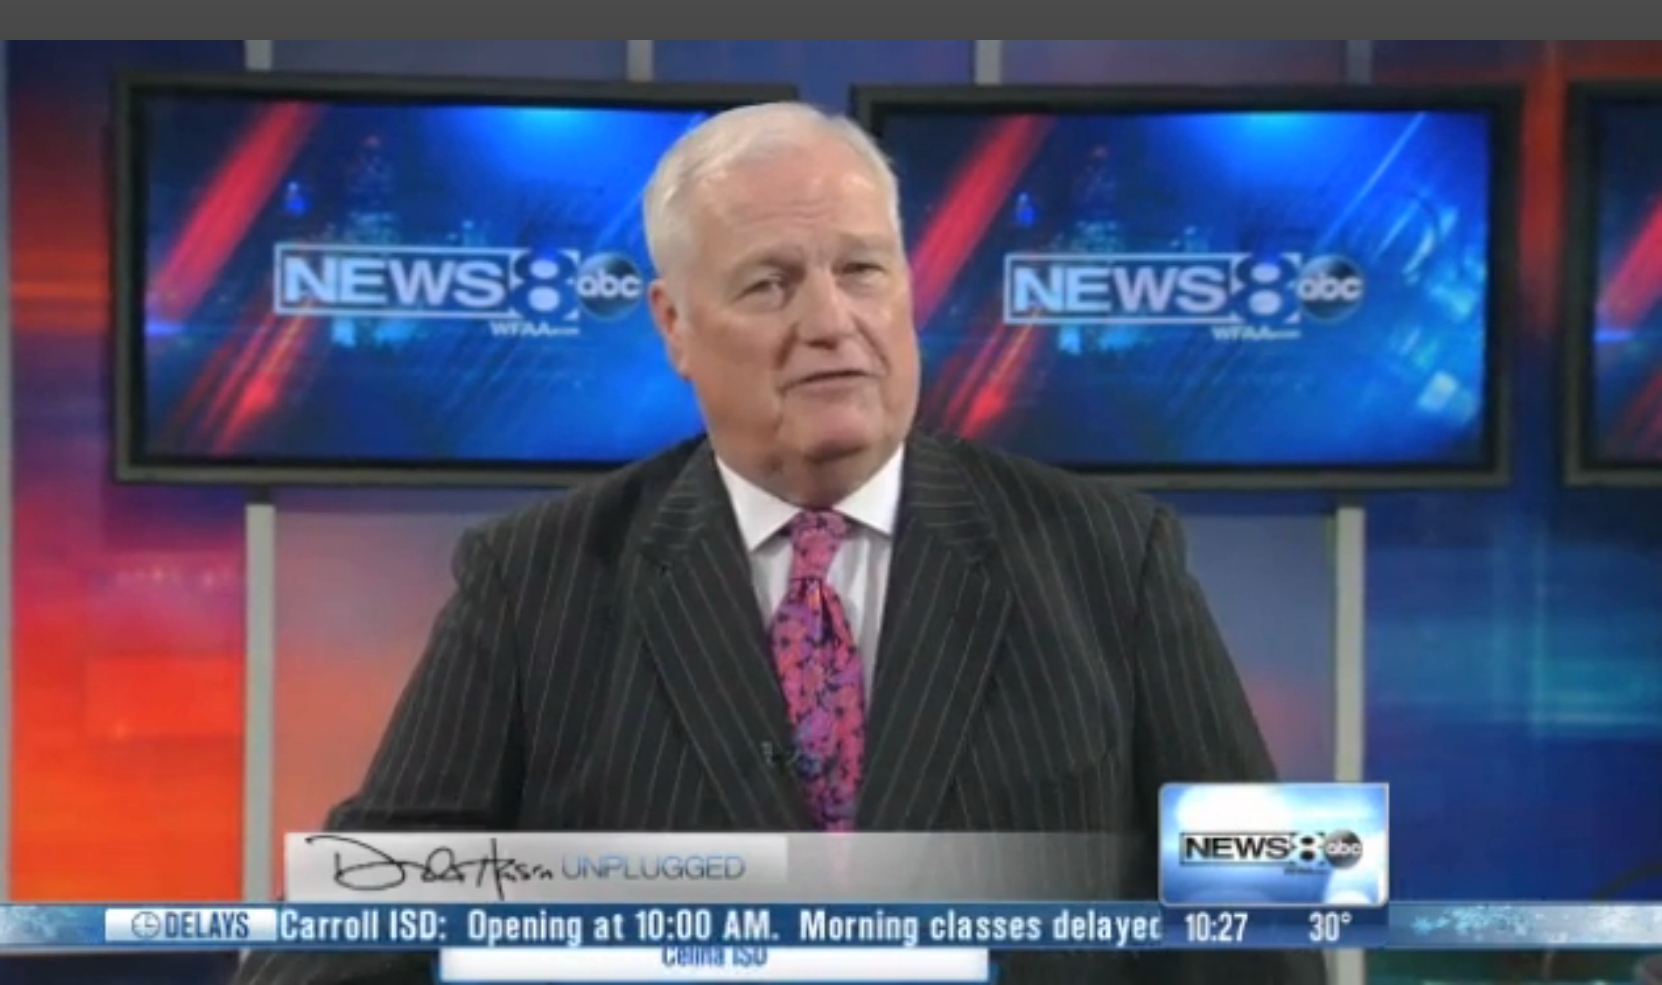 WATCH: WFAA's Dale Hansen says NFL is ready for an openly gay player